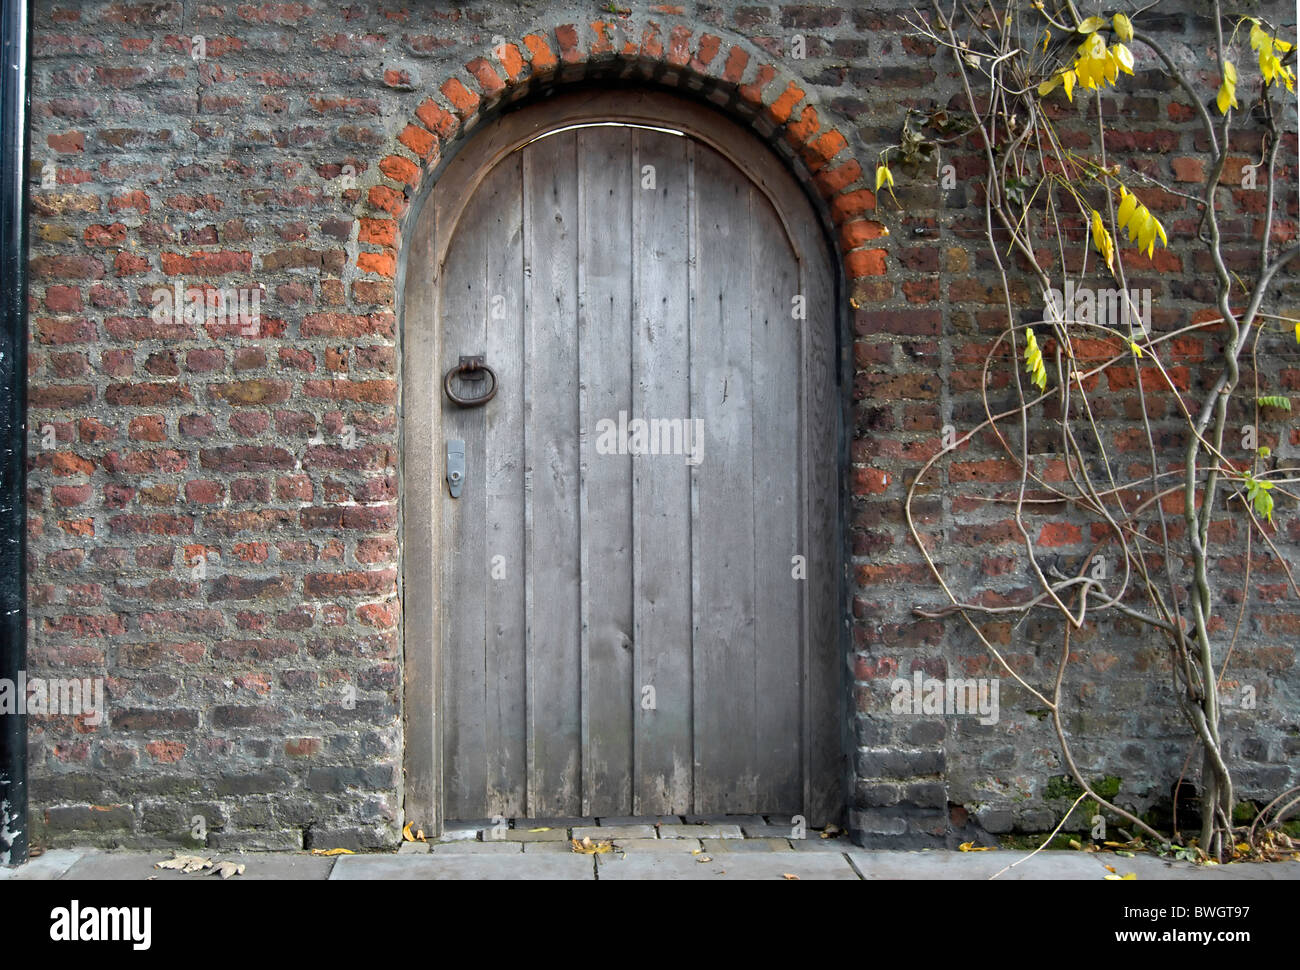 969 #7E5E4D Old Arched Wooden Door In Brick Wall Stock Photo Royalty Free  save image Arch Doors Exterior 39771300